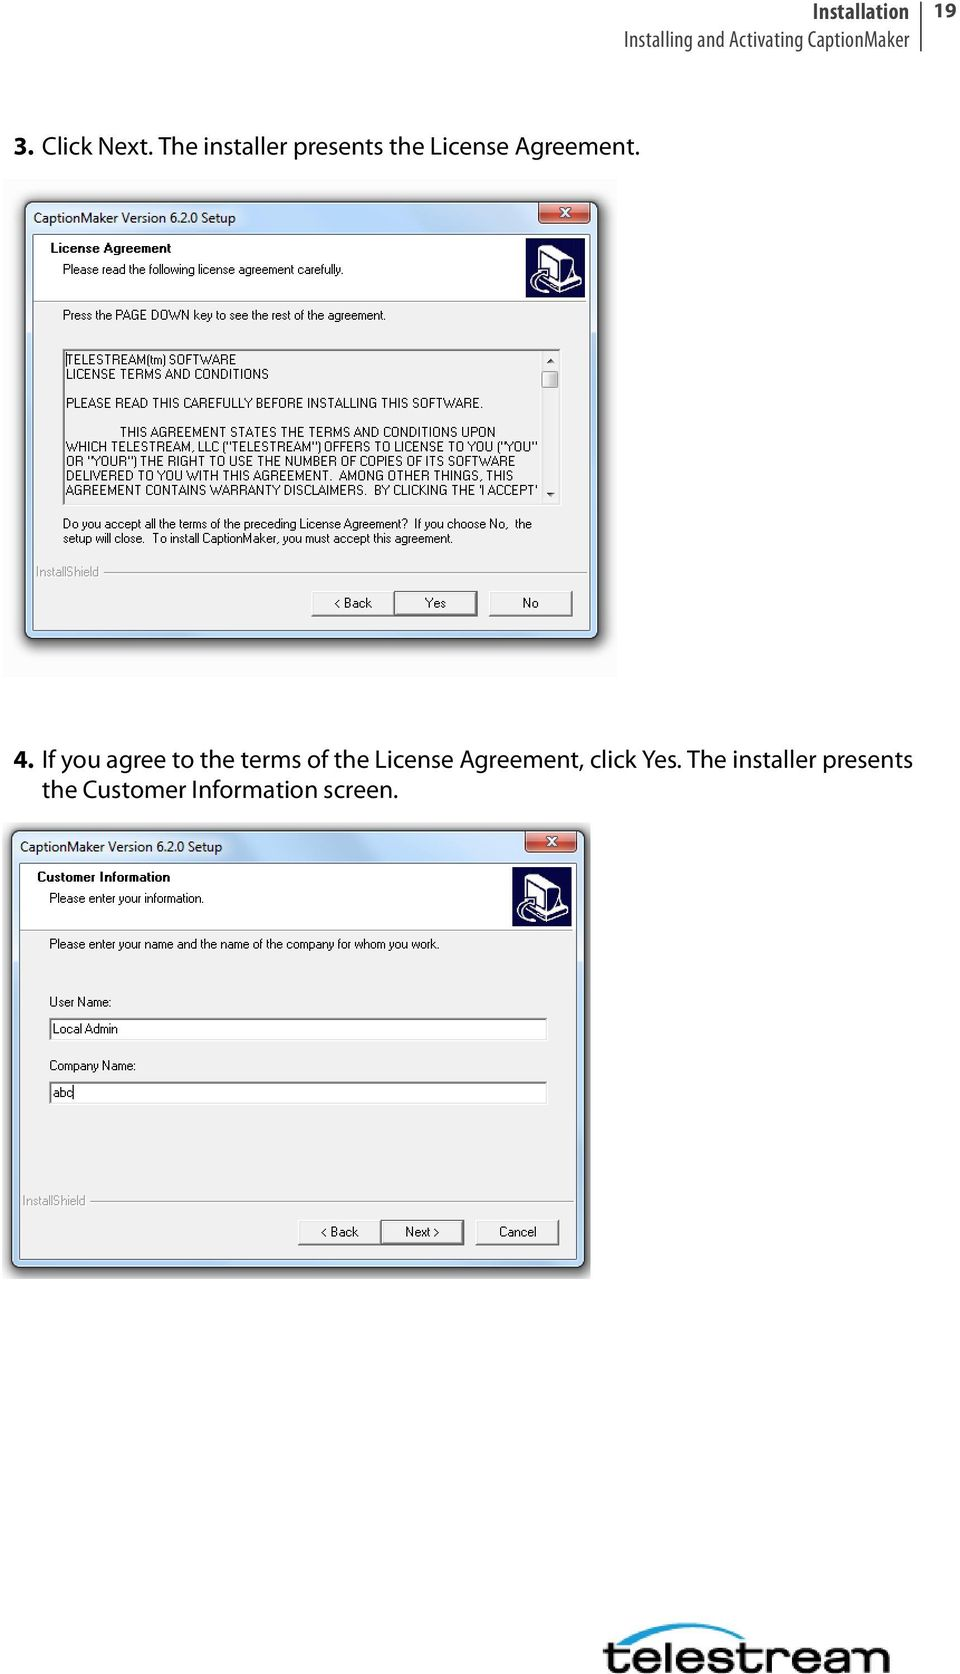 If you agree to the terms of the License Agreement, click